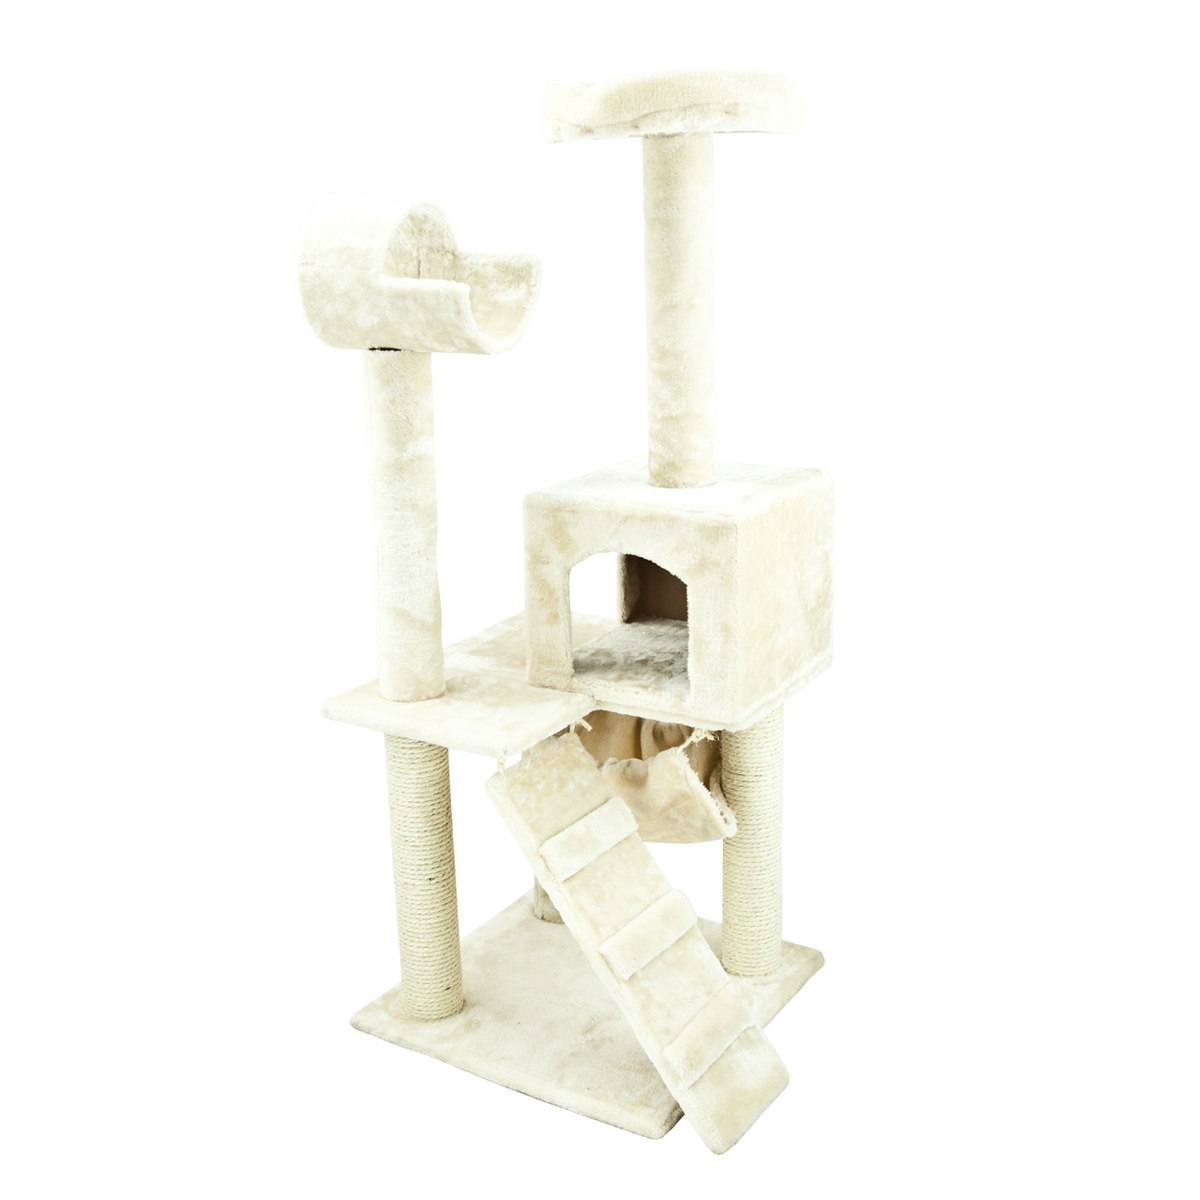 Feline deluxe condo scratcher furniture house hammock bed for Cat tower with hammock